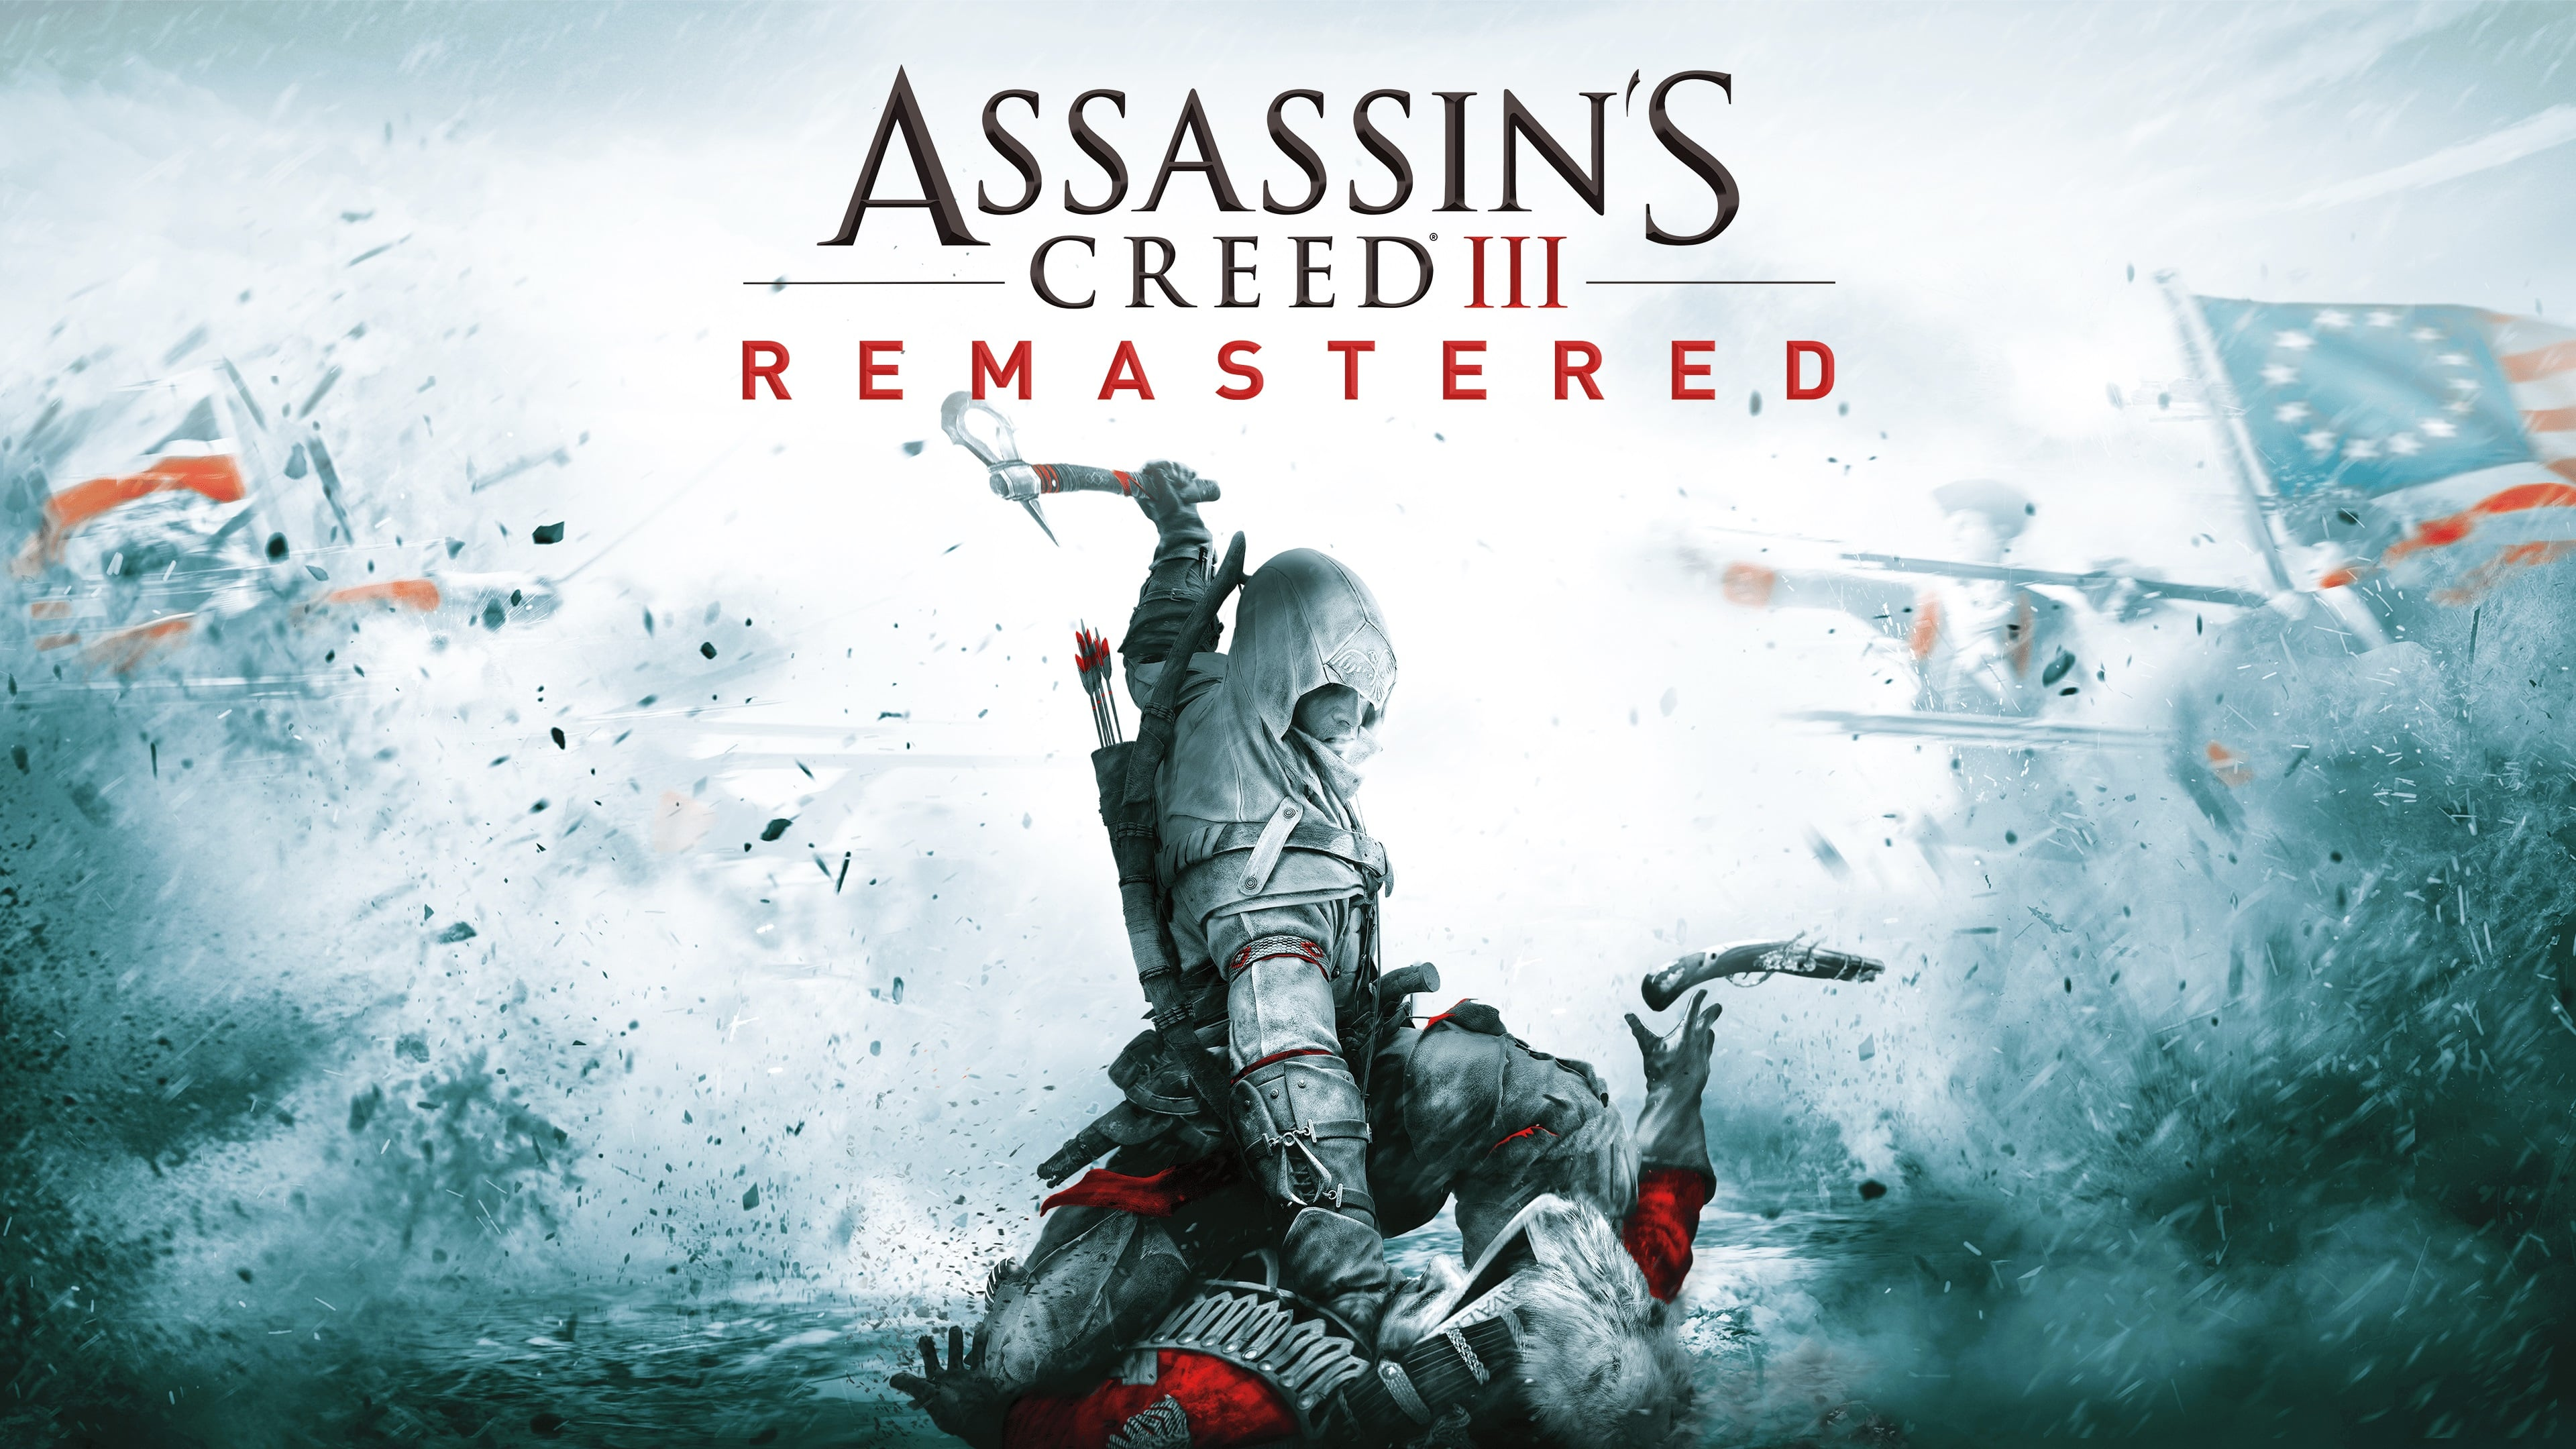 Assassin S Creed Iii Remastered Review